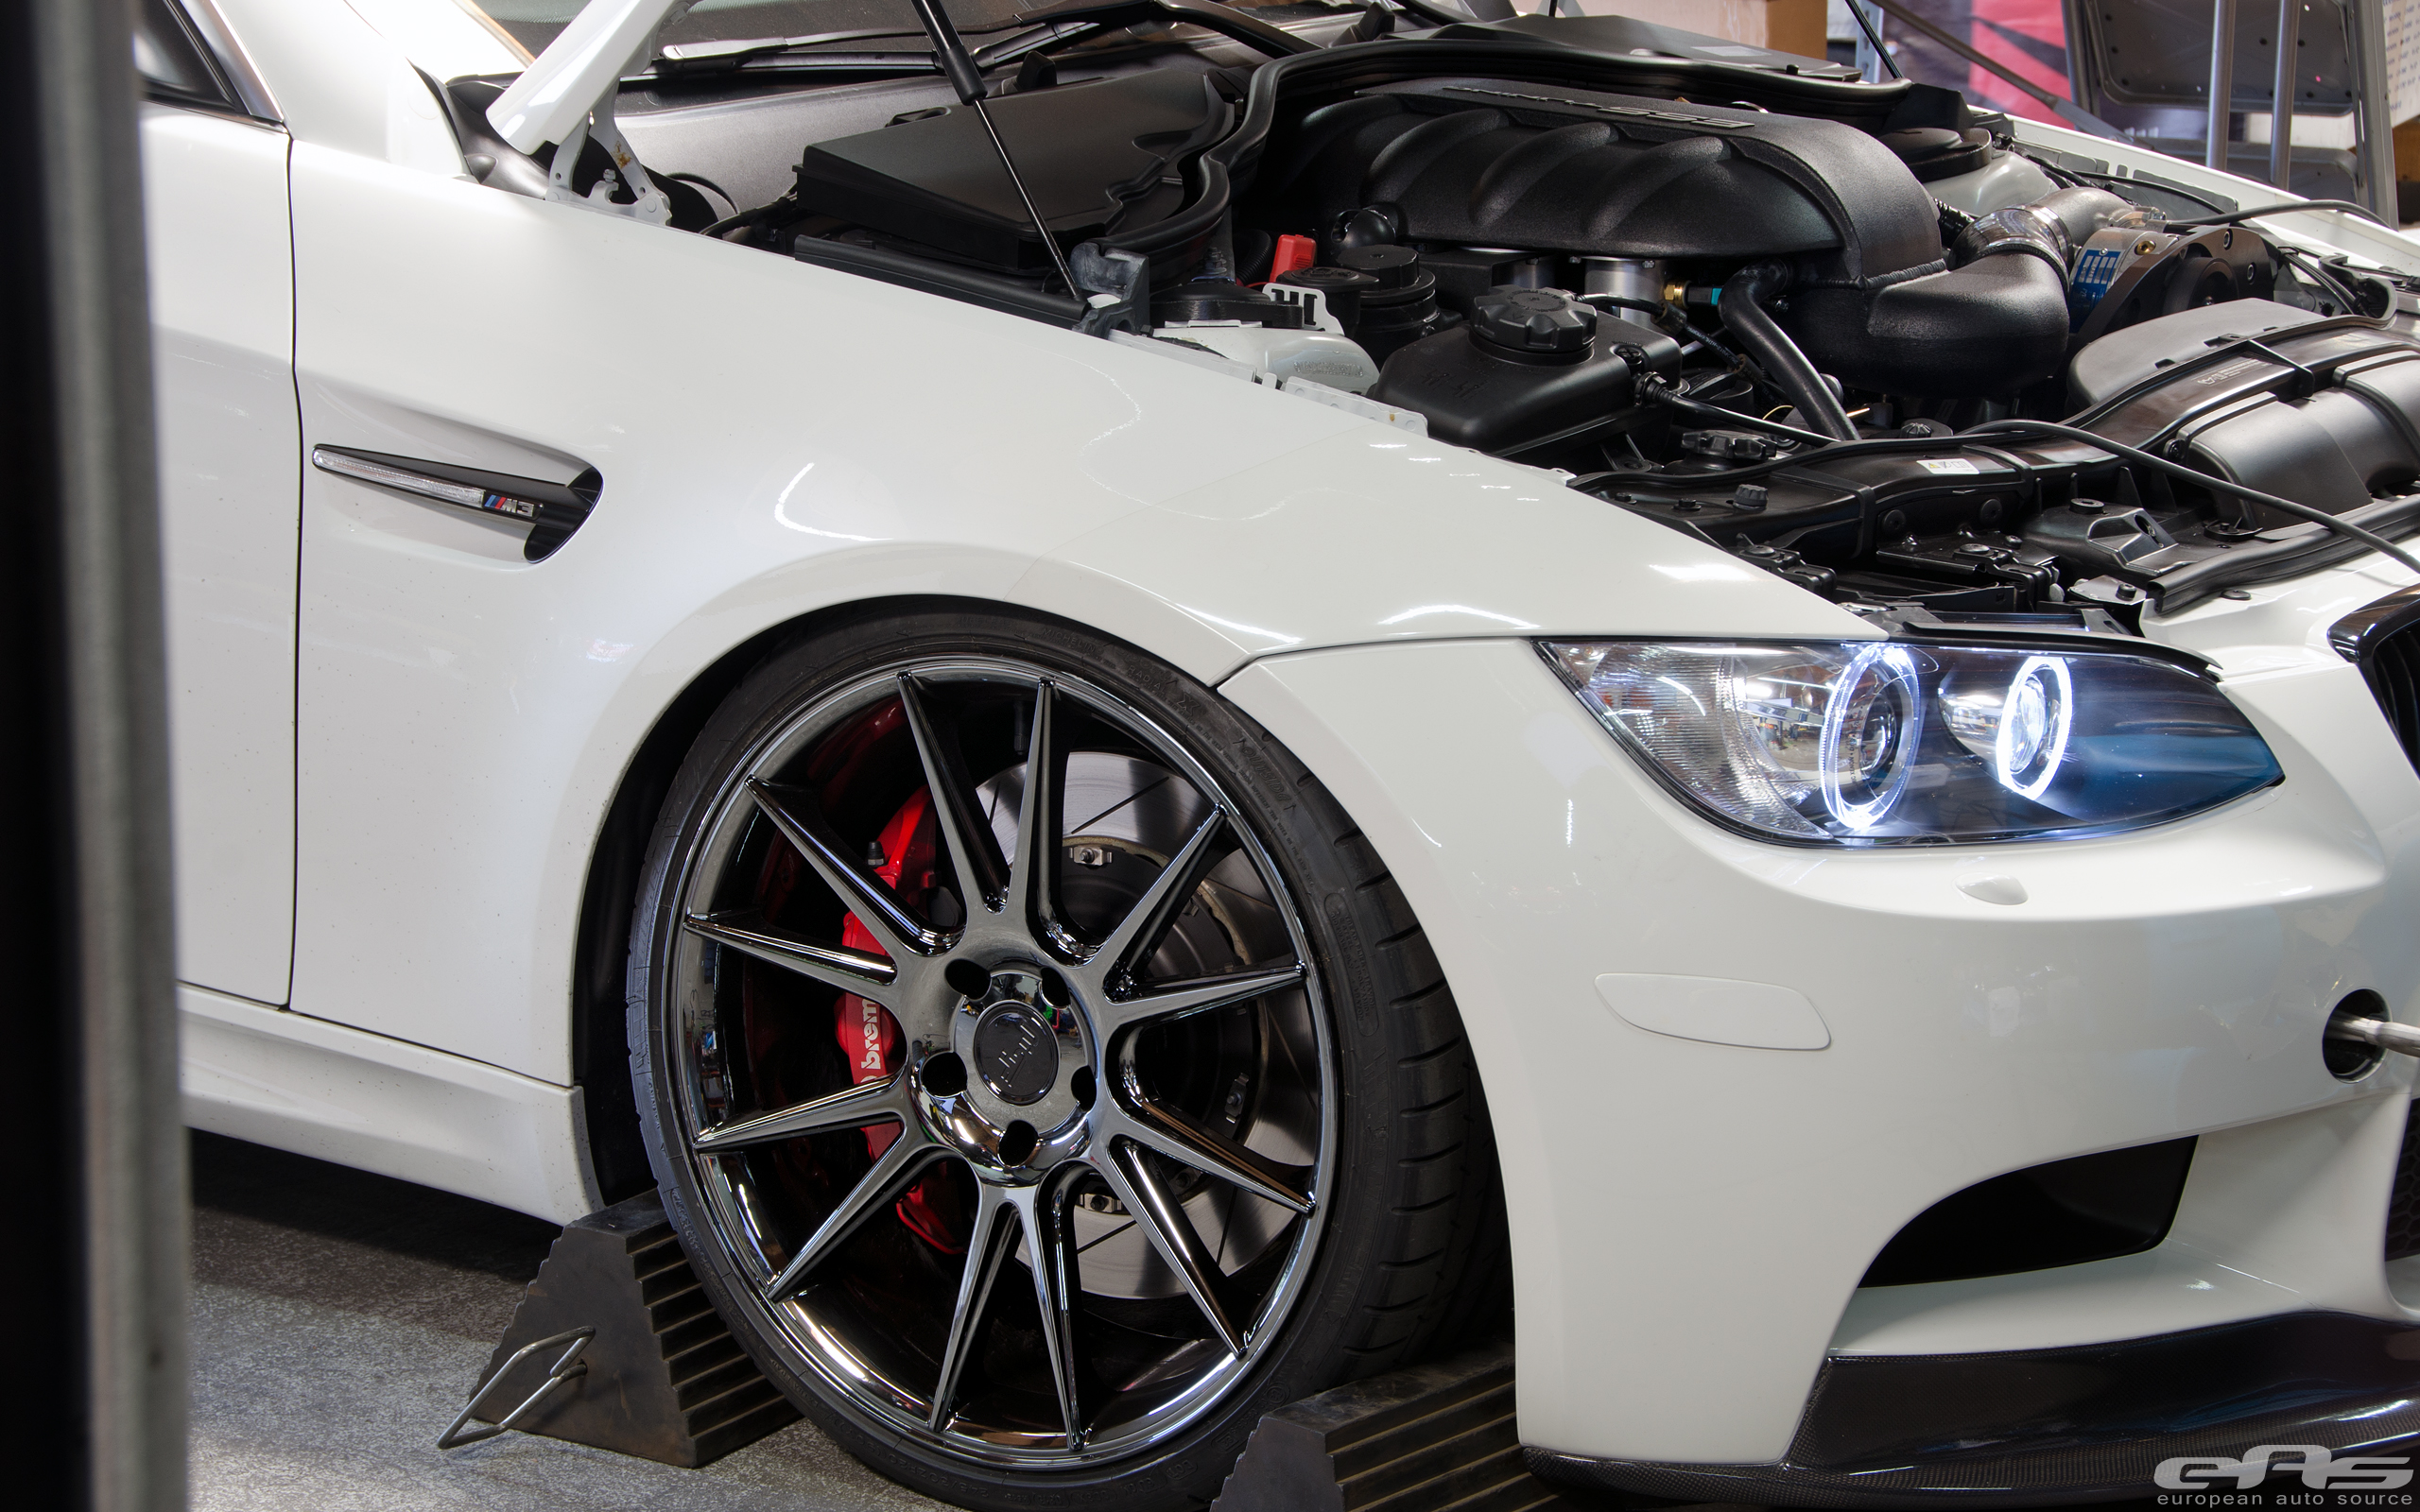 Bmw E93 M3 Convertible Gets Shiny Wheels At Eas